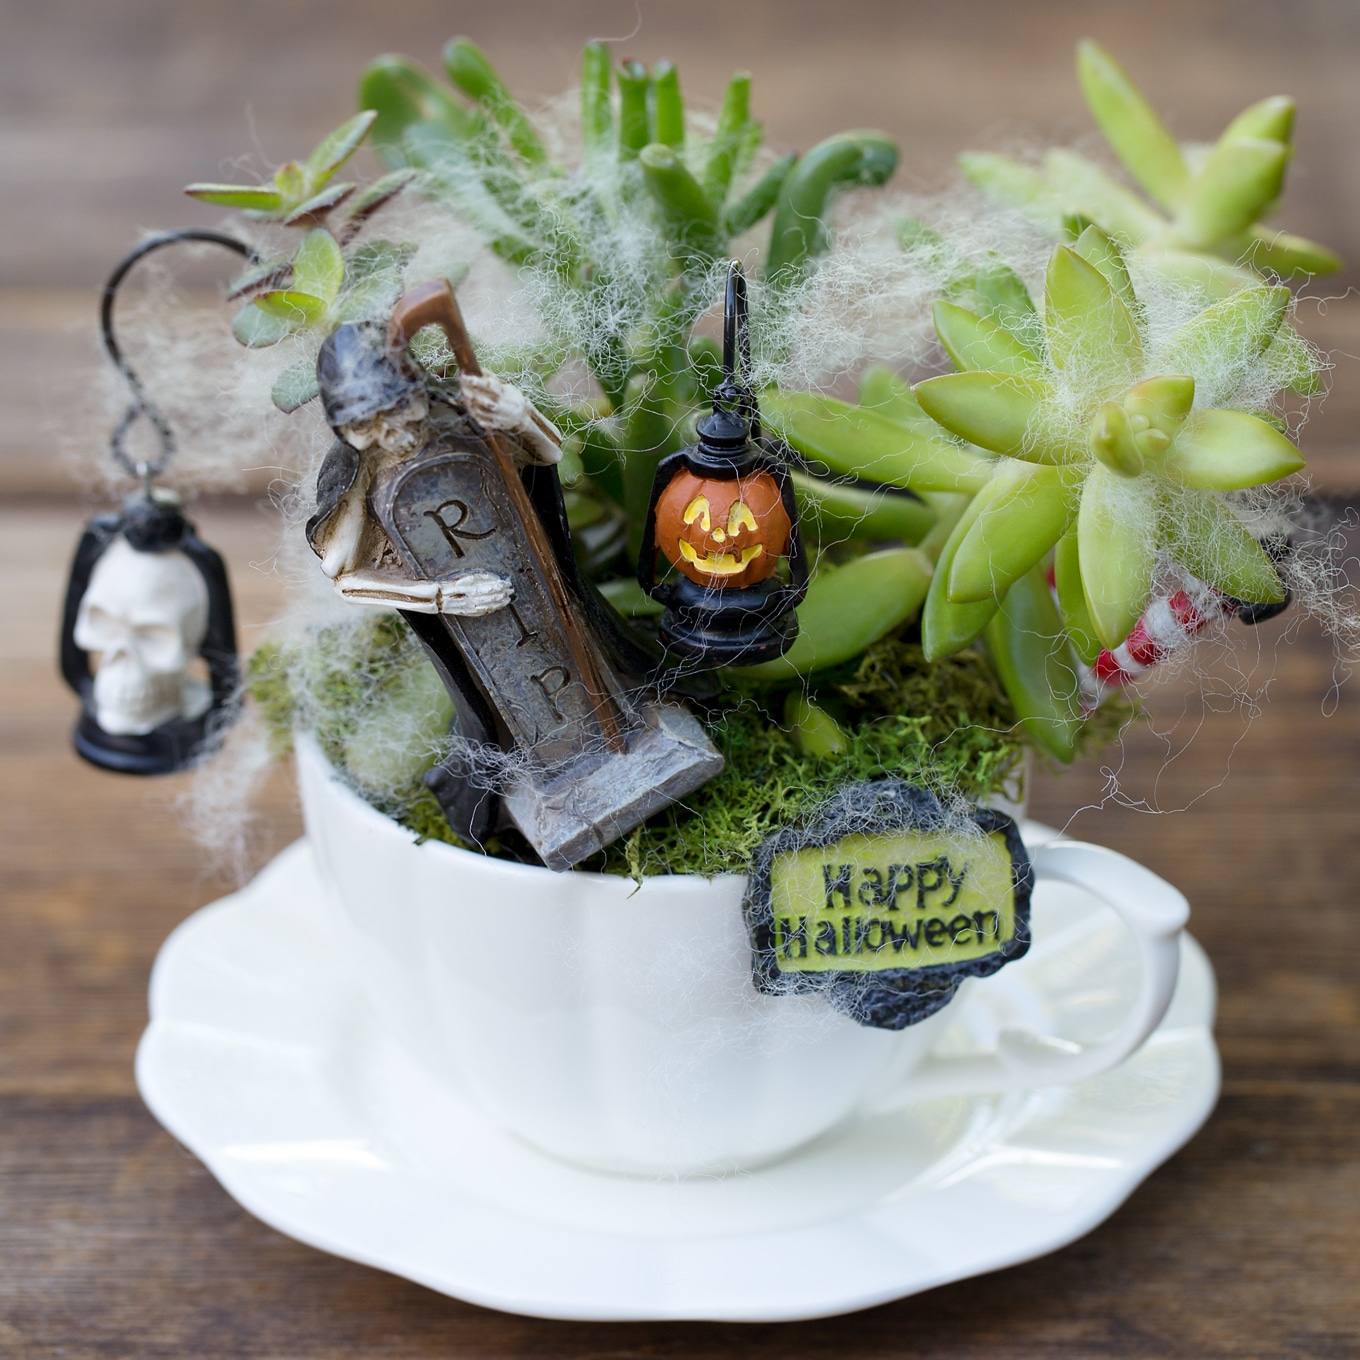 Halloween Teacup Fairy Garden